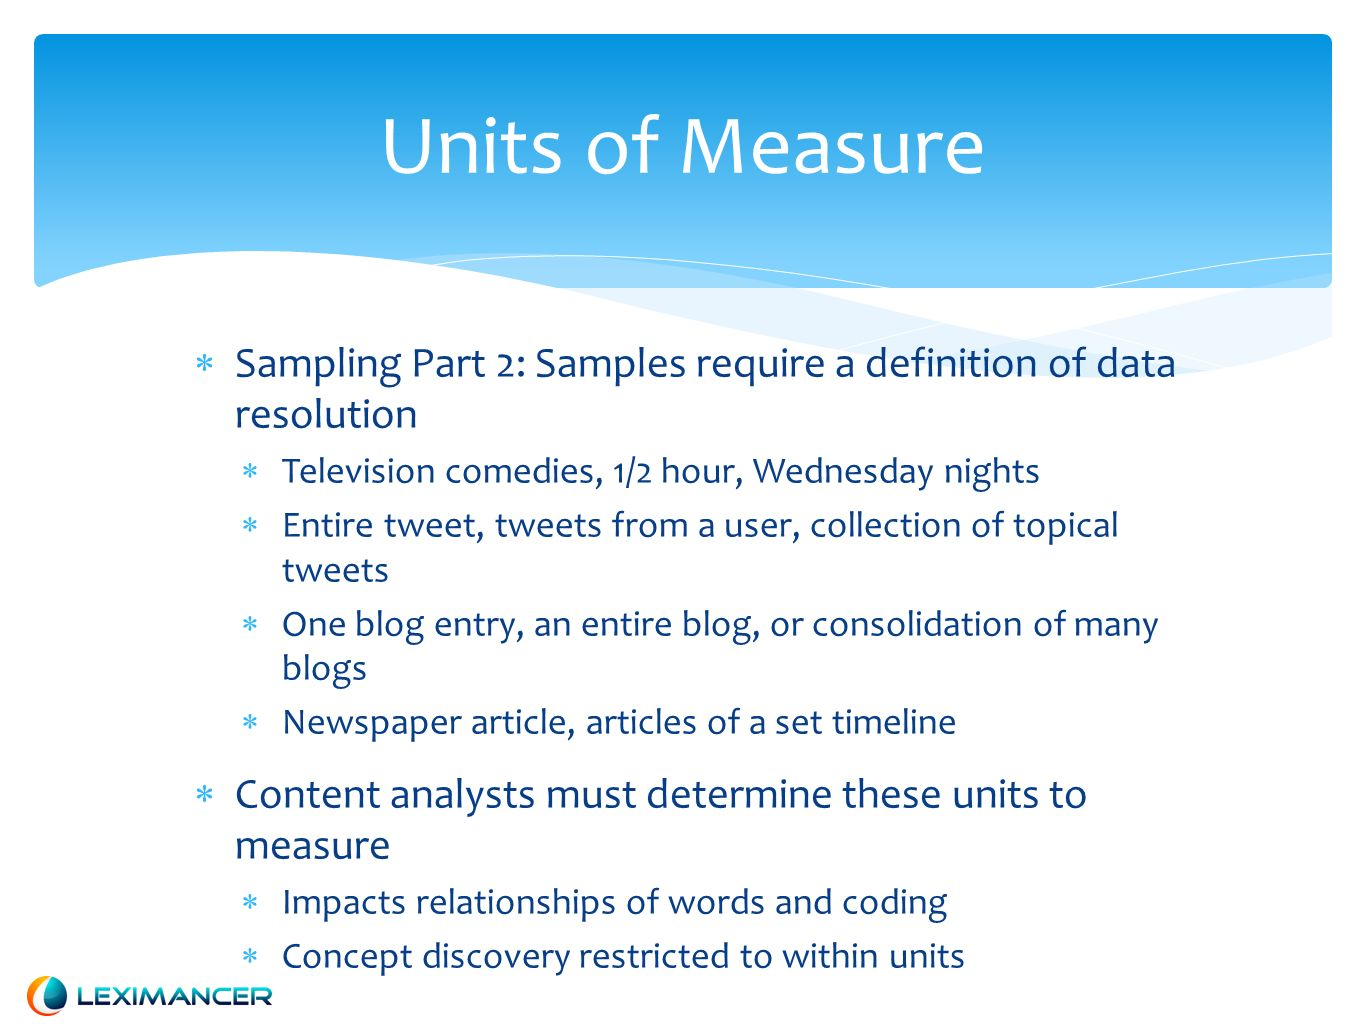 Units of Measure Sampling Part 2: Samples require a definition of data resolution Television comedies, 1/2 hour, Wednesday nights Entire tweet, tweets from a user, collection of topical tweets One blog entry, an entire blog, or consolidation of many blogs Newspaper article, articles of a set timeline Content analysts must determine these units to measure Impacts relationships of words and coding Concept discovery restricted to within units